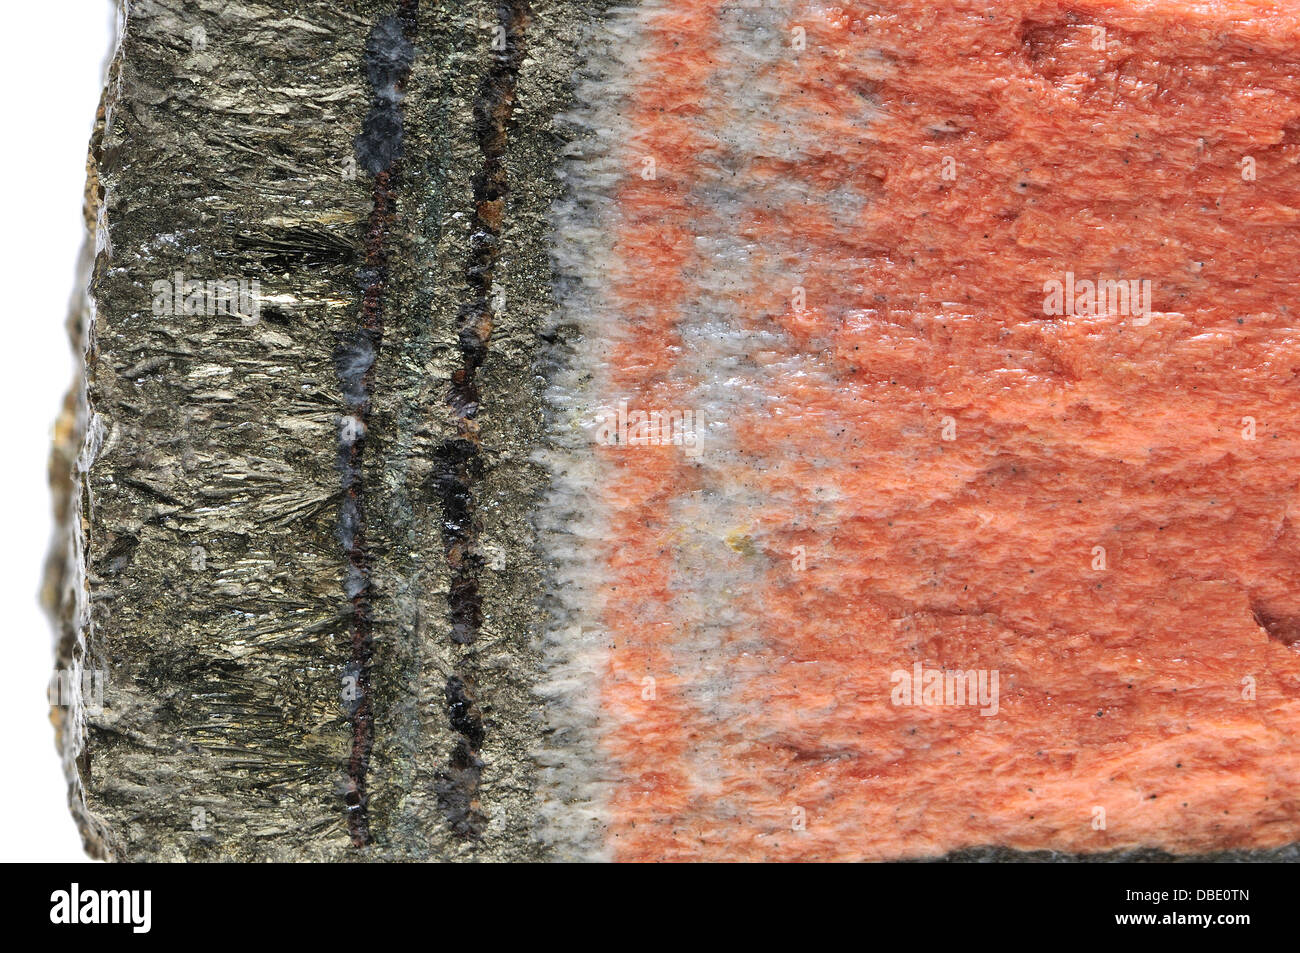 Banded Barian Celestine (strontium sulphate) and iron pyrite - Stock Image